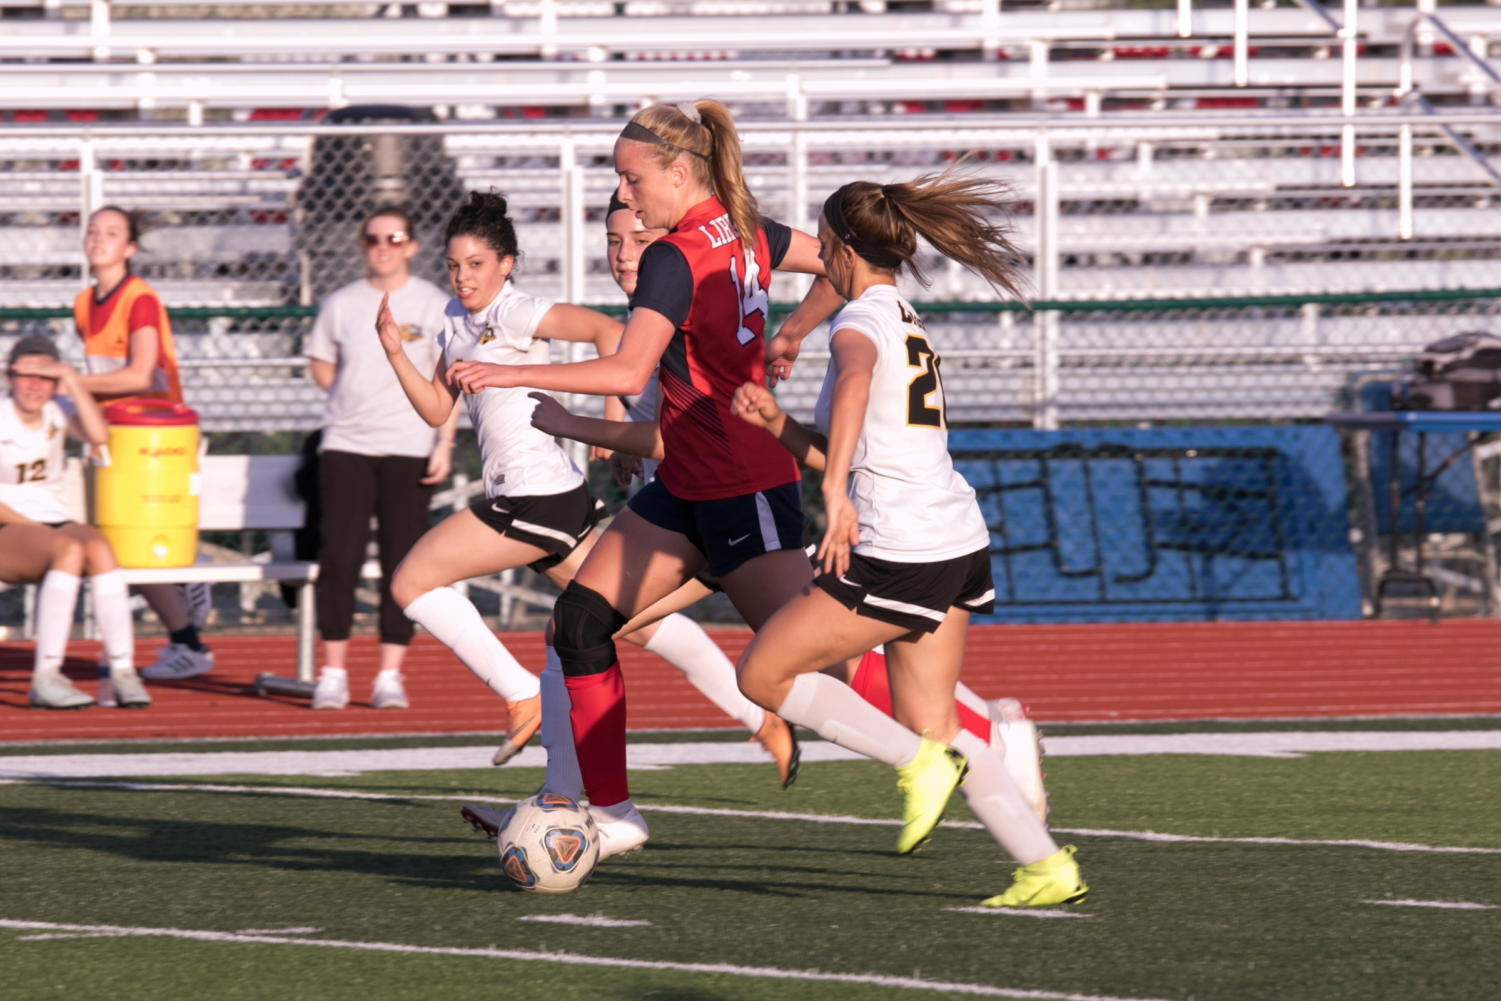 Chloe Netzel (#14) is the highest scorer so far this season, with 24 goals and five assists.